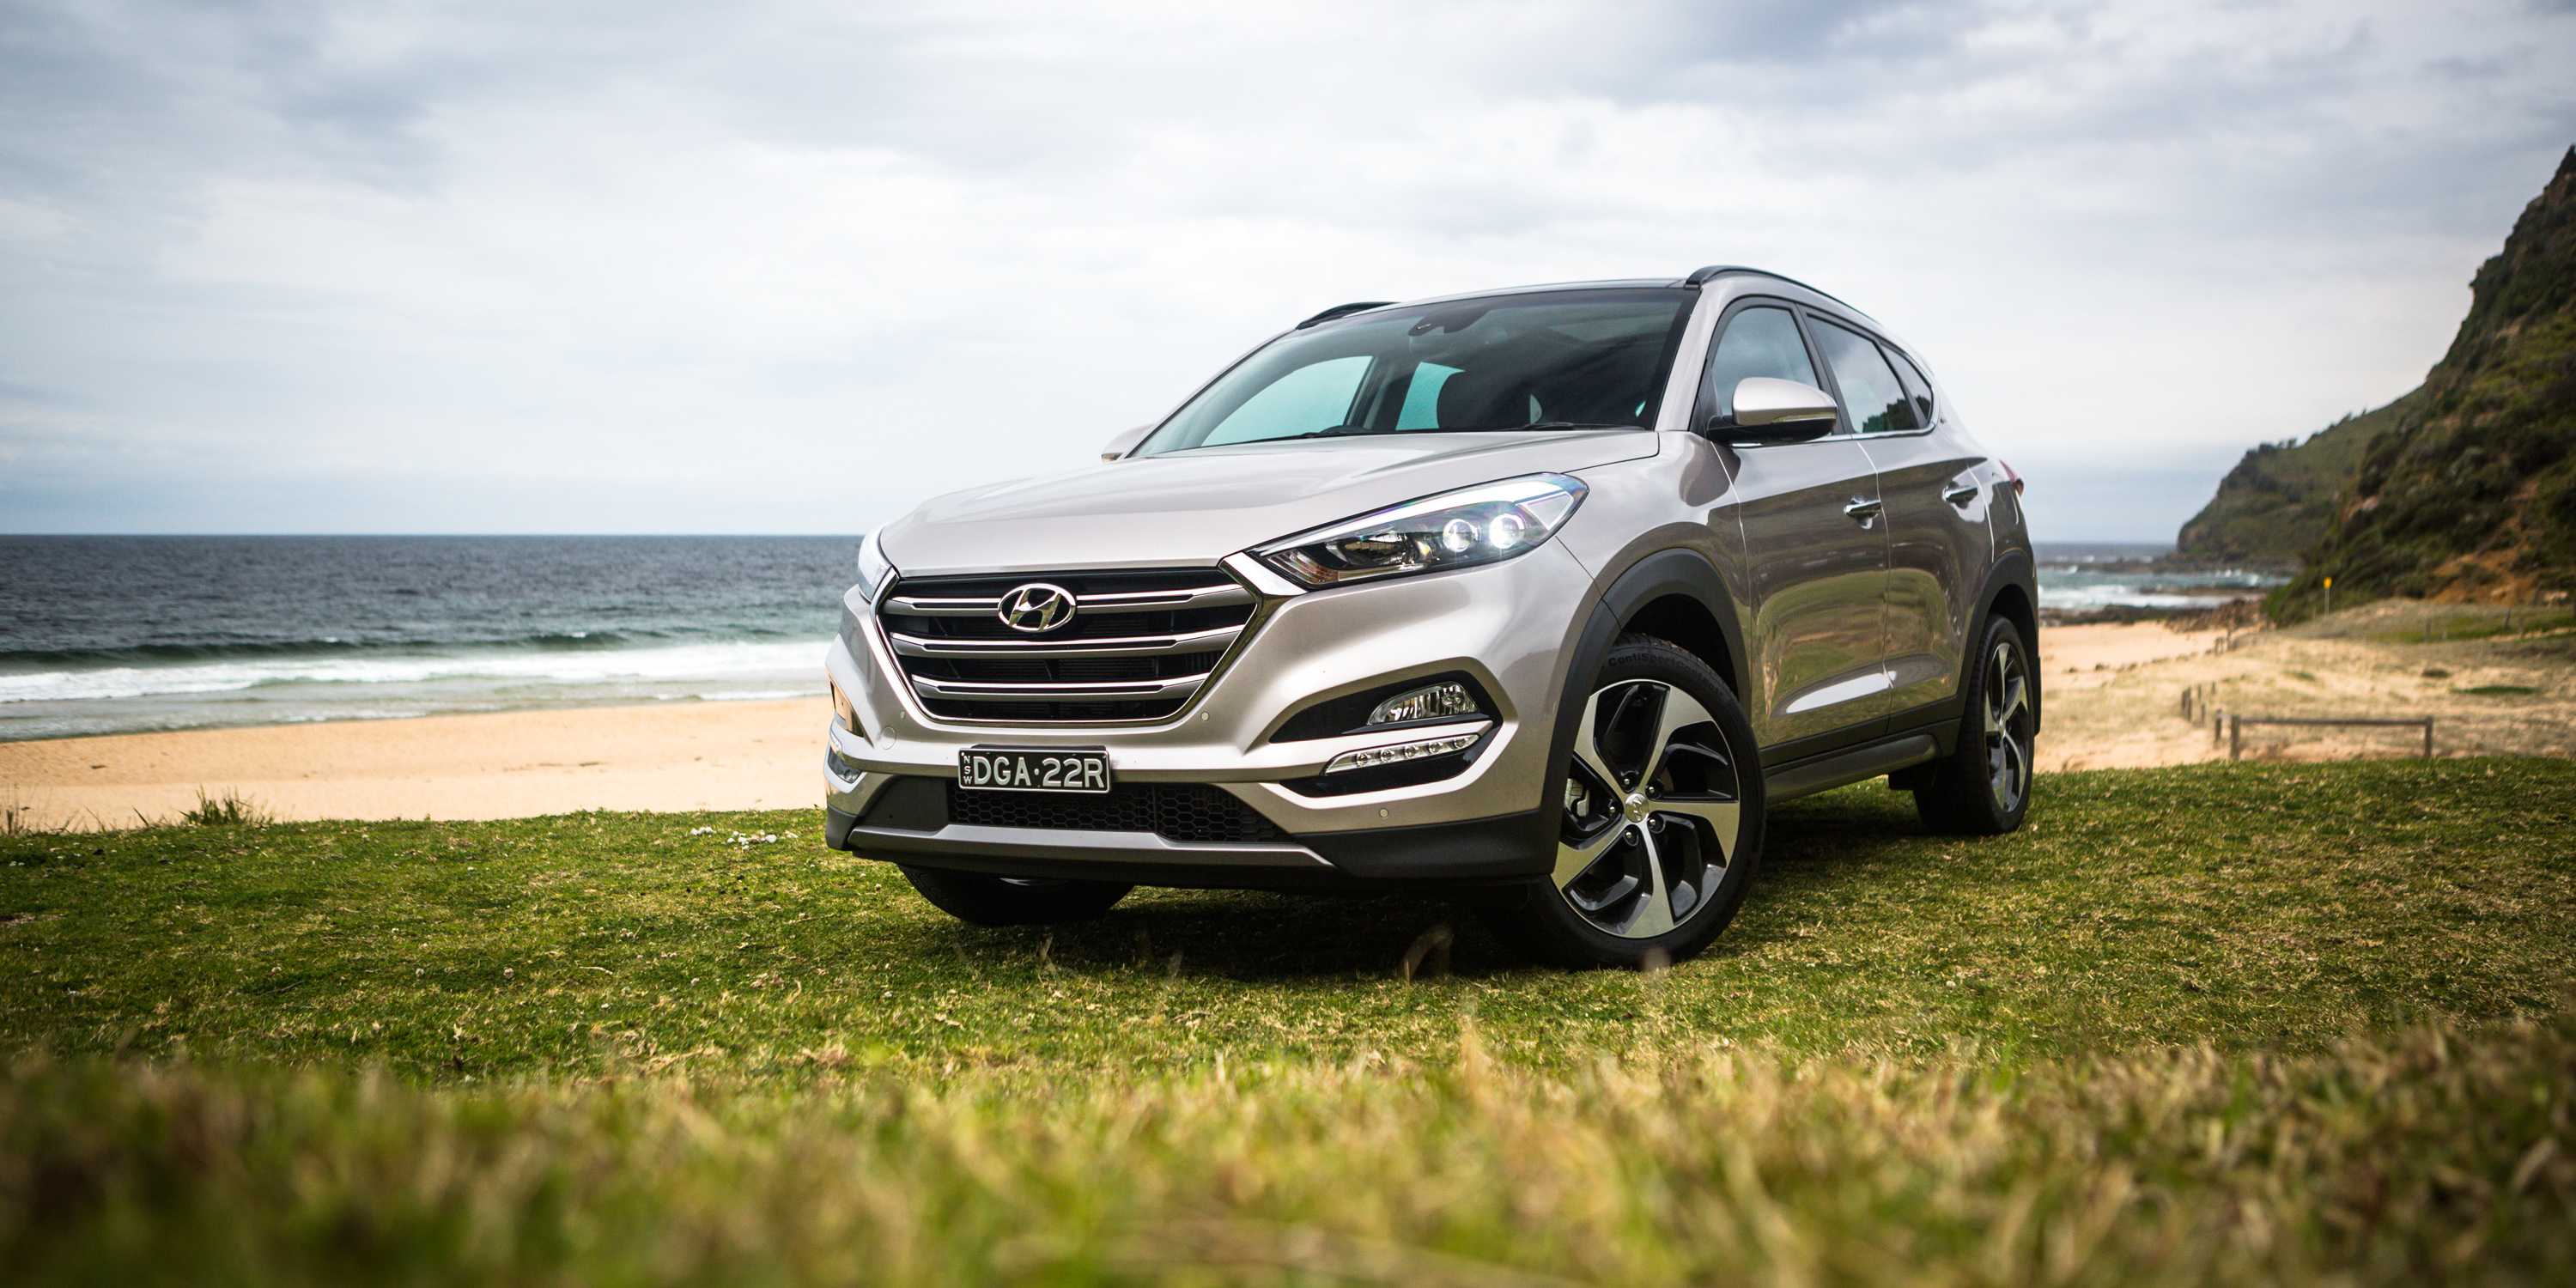 new hyundai santa fe to get bigger and more rugged look. Black Bedroom Furniture Sets. Home Design Ideas